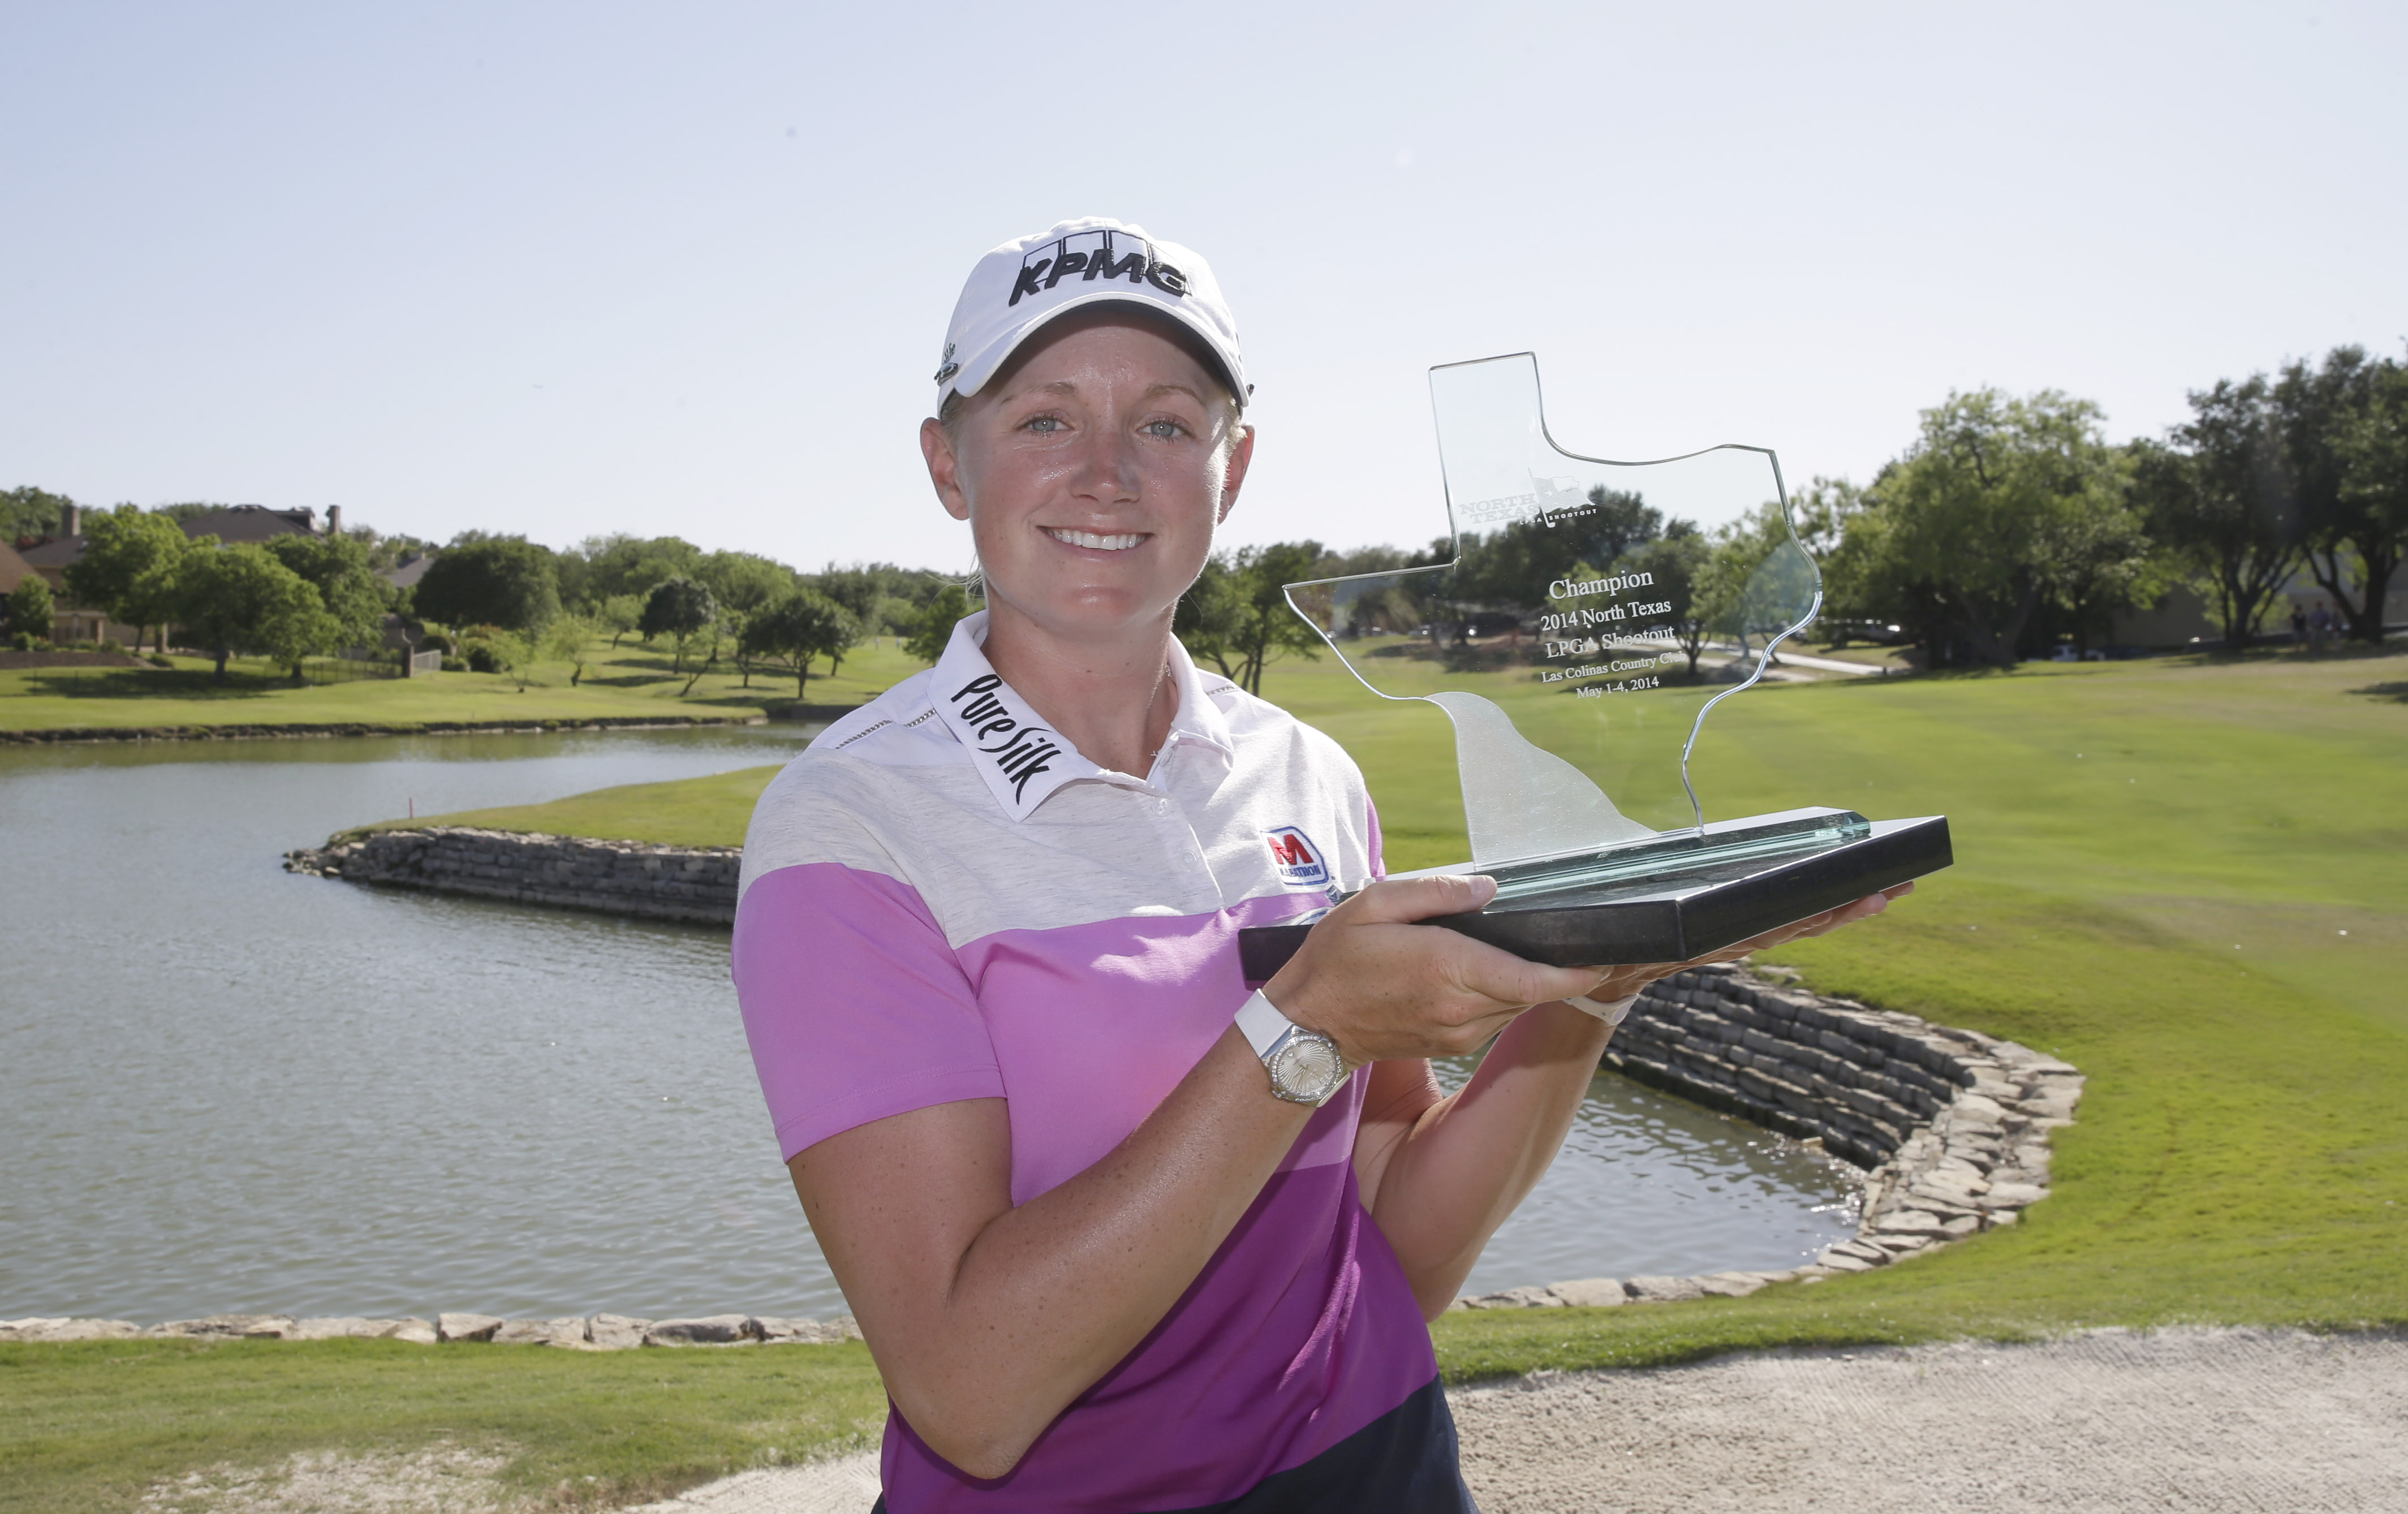 Lewis poised to reclaim No. 1 ranking at Kingsmill